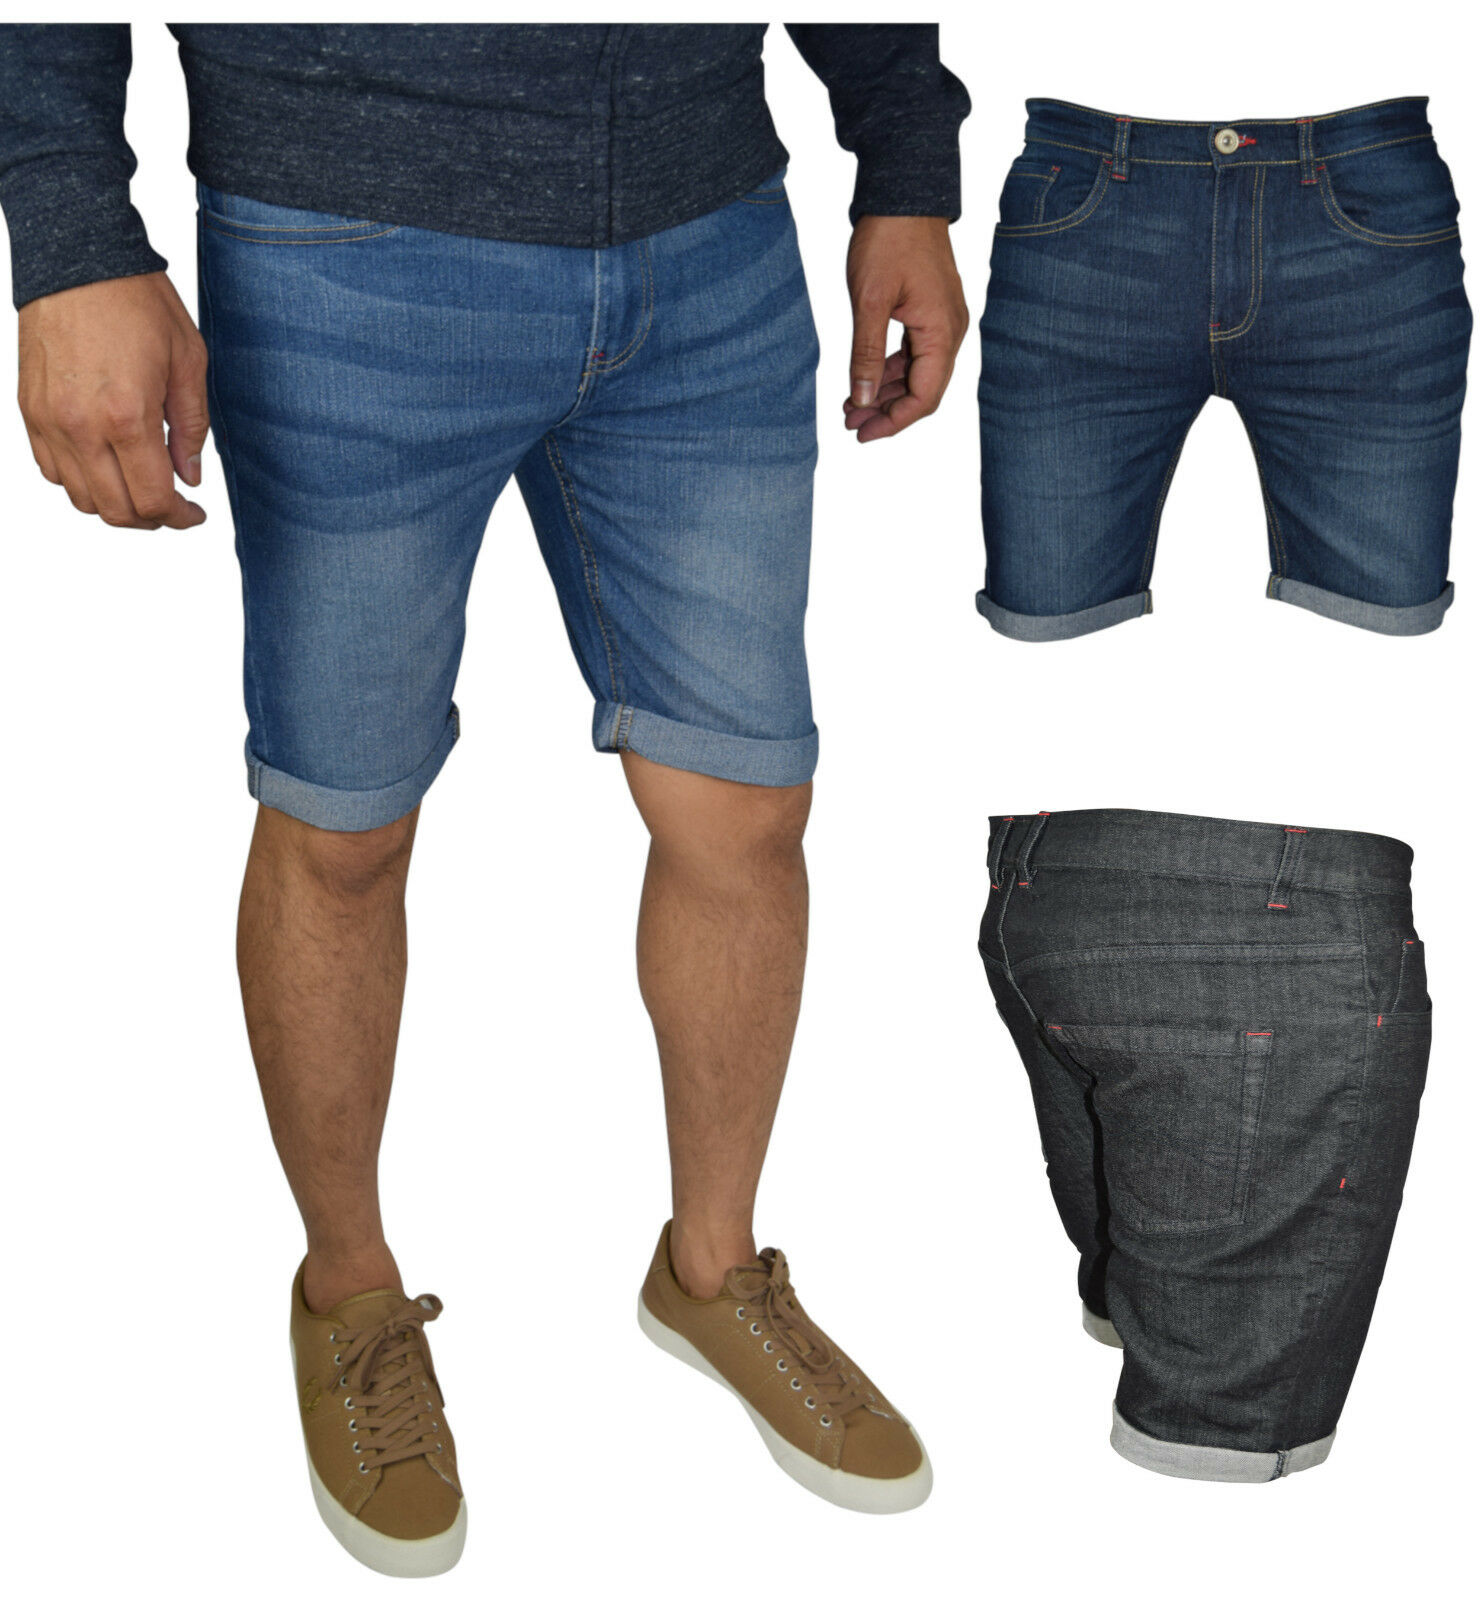 Men's Slim Fit Stretch Denim Shorts Jeans Flat Front Half Pants Clothing, Shoes & Accessories